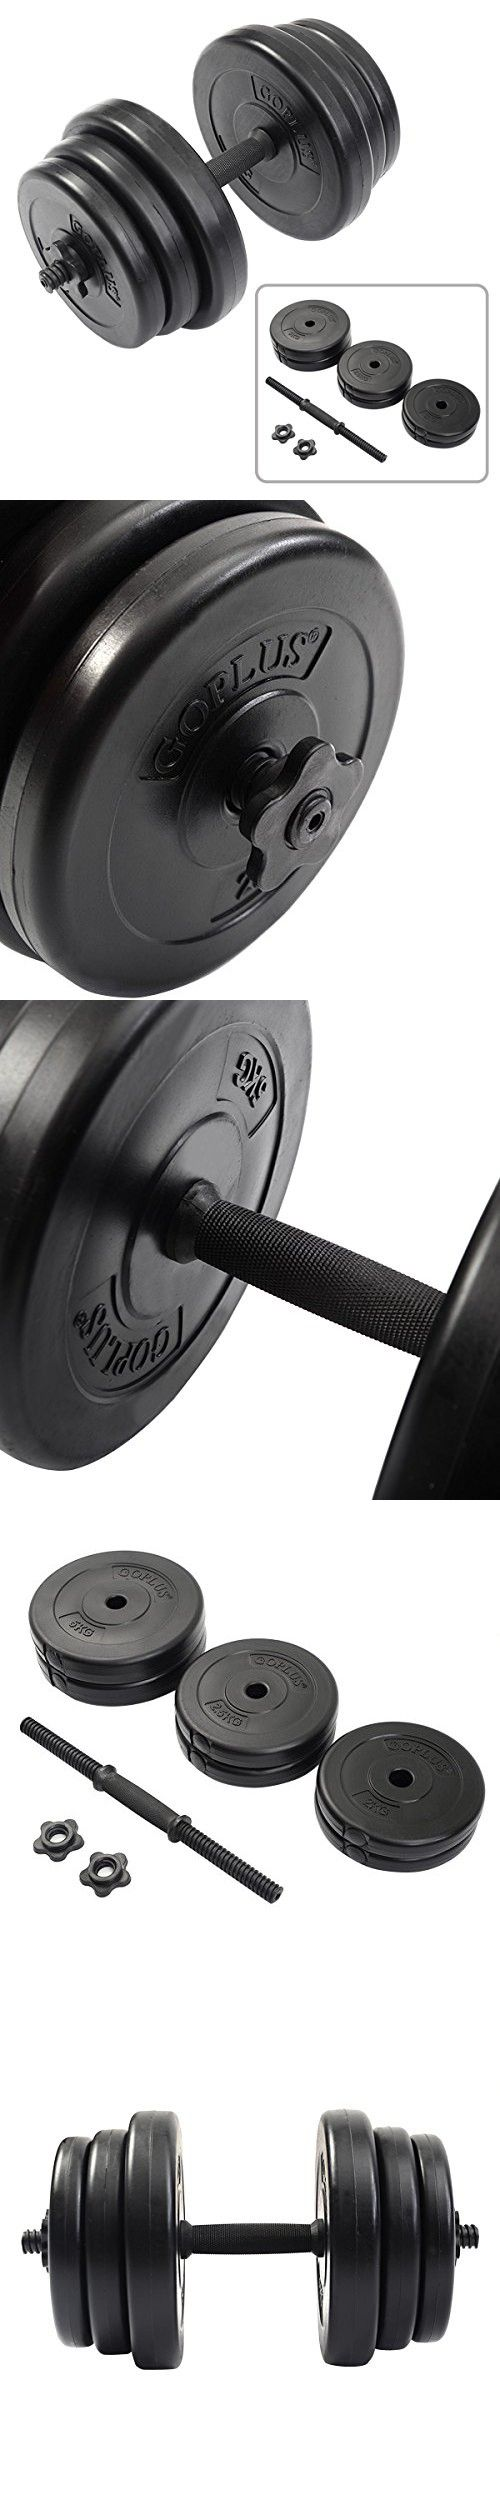 UBRTools Weight Dumbbell Set 44 LB Adjustable Cap Gym Barbell Plates Body Workout